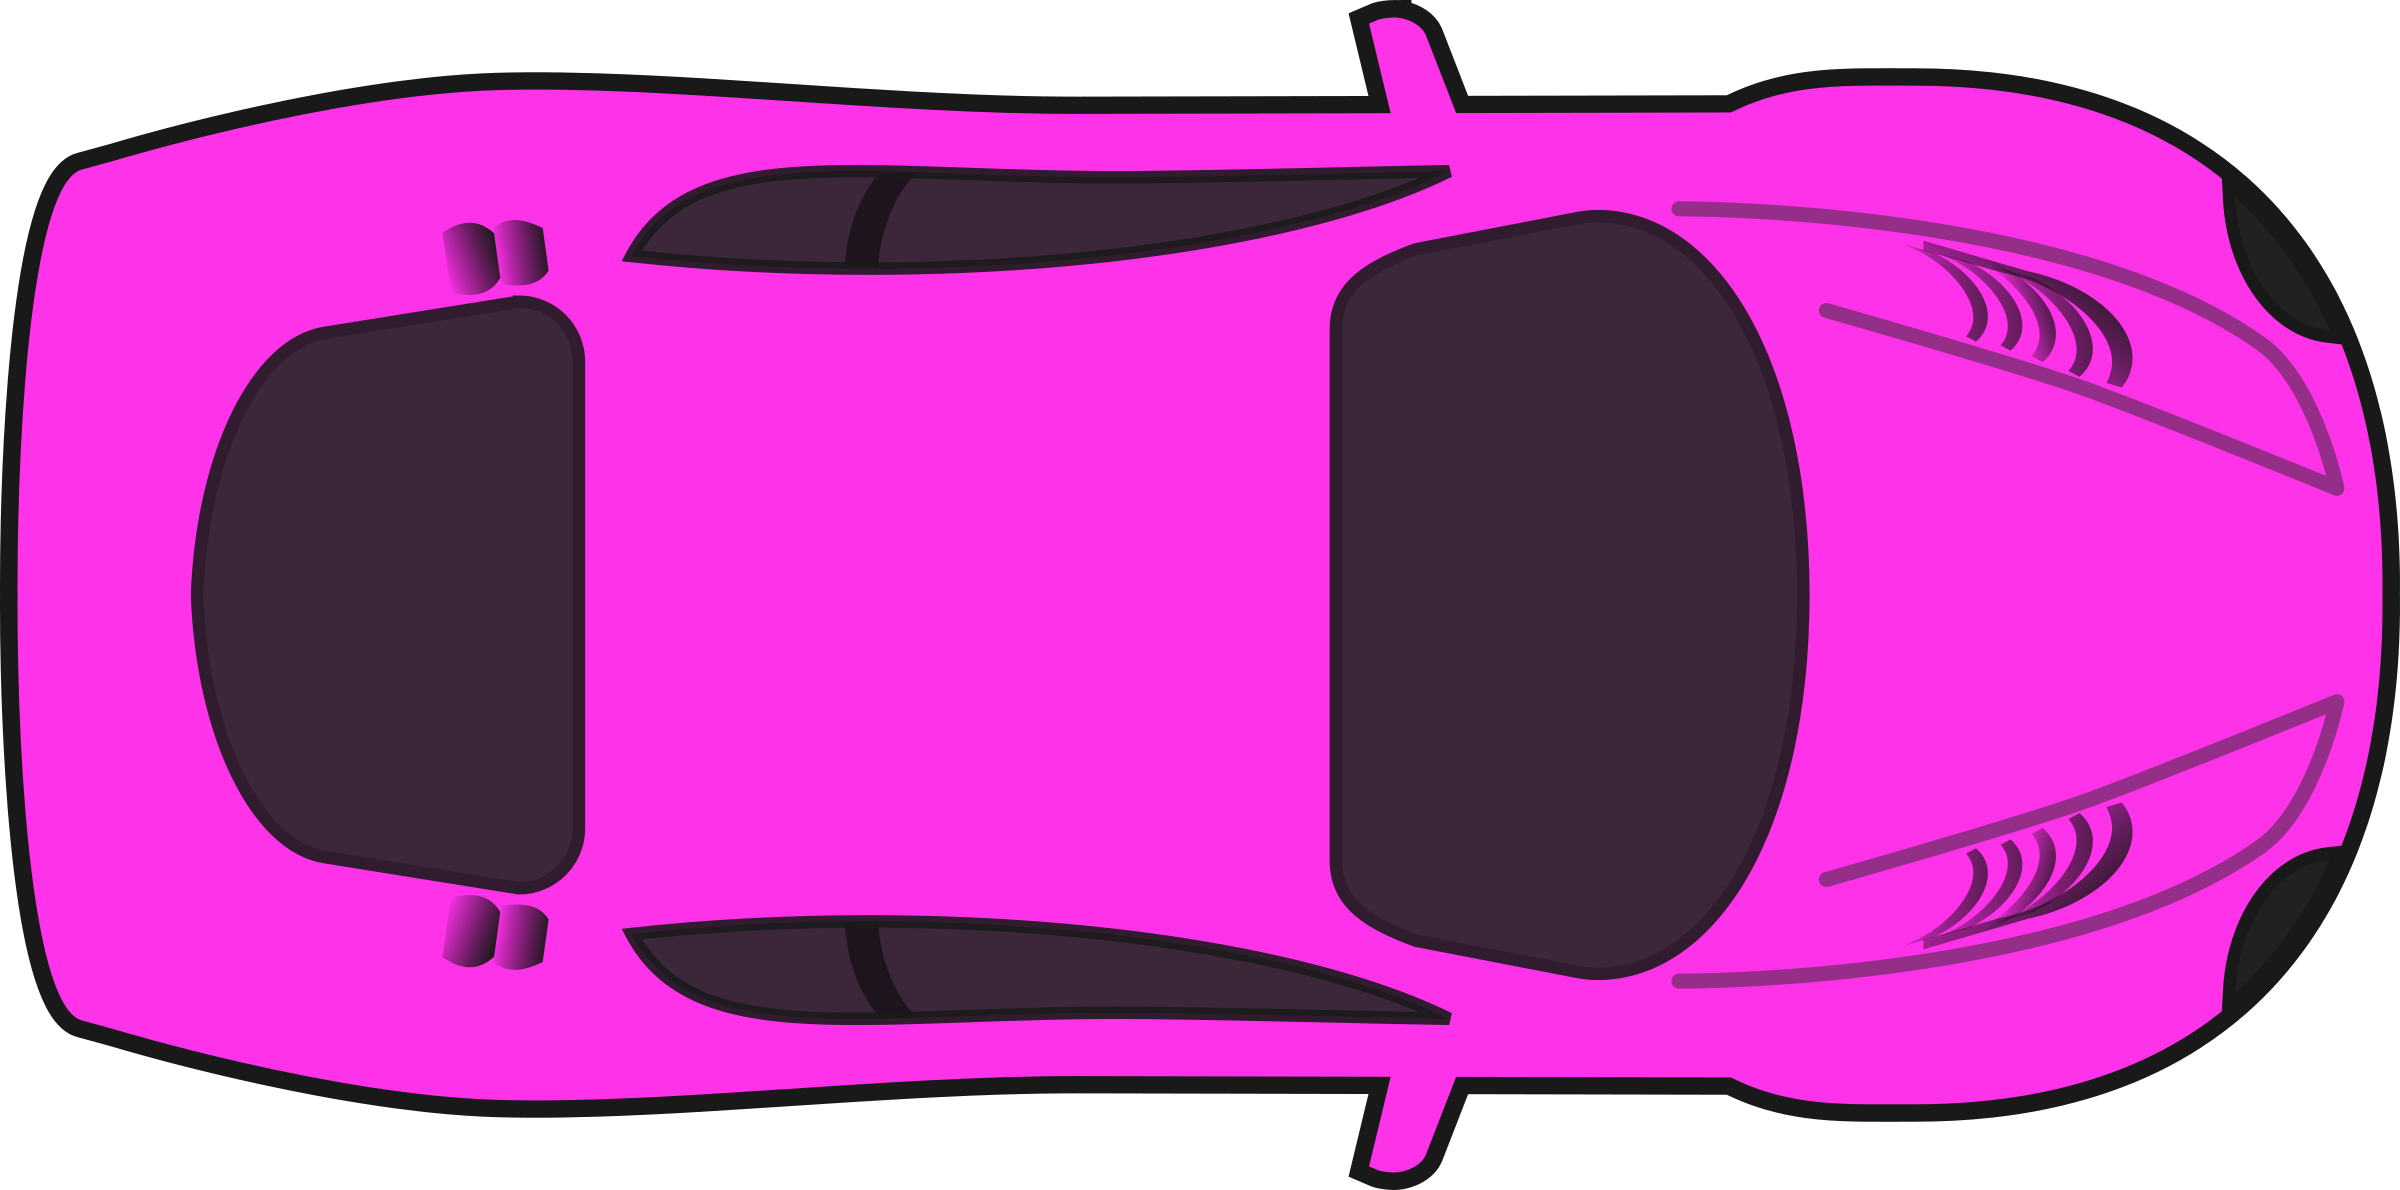 Pink Racing Car (Top View) by qubodup